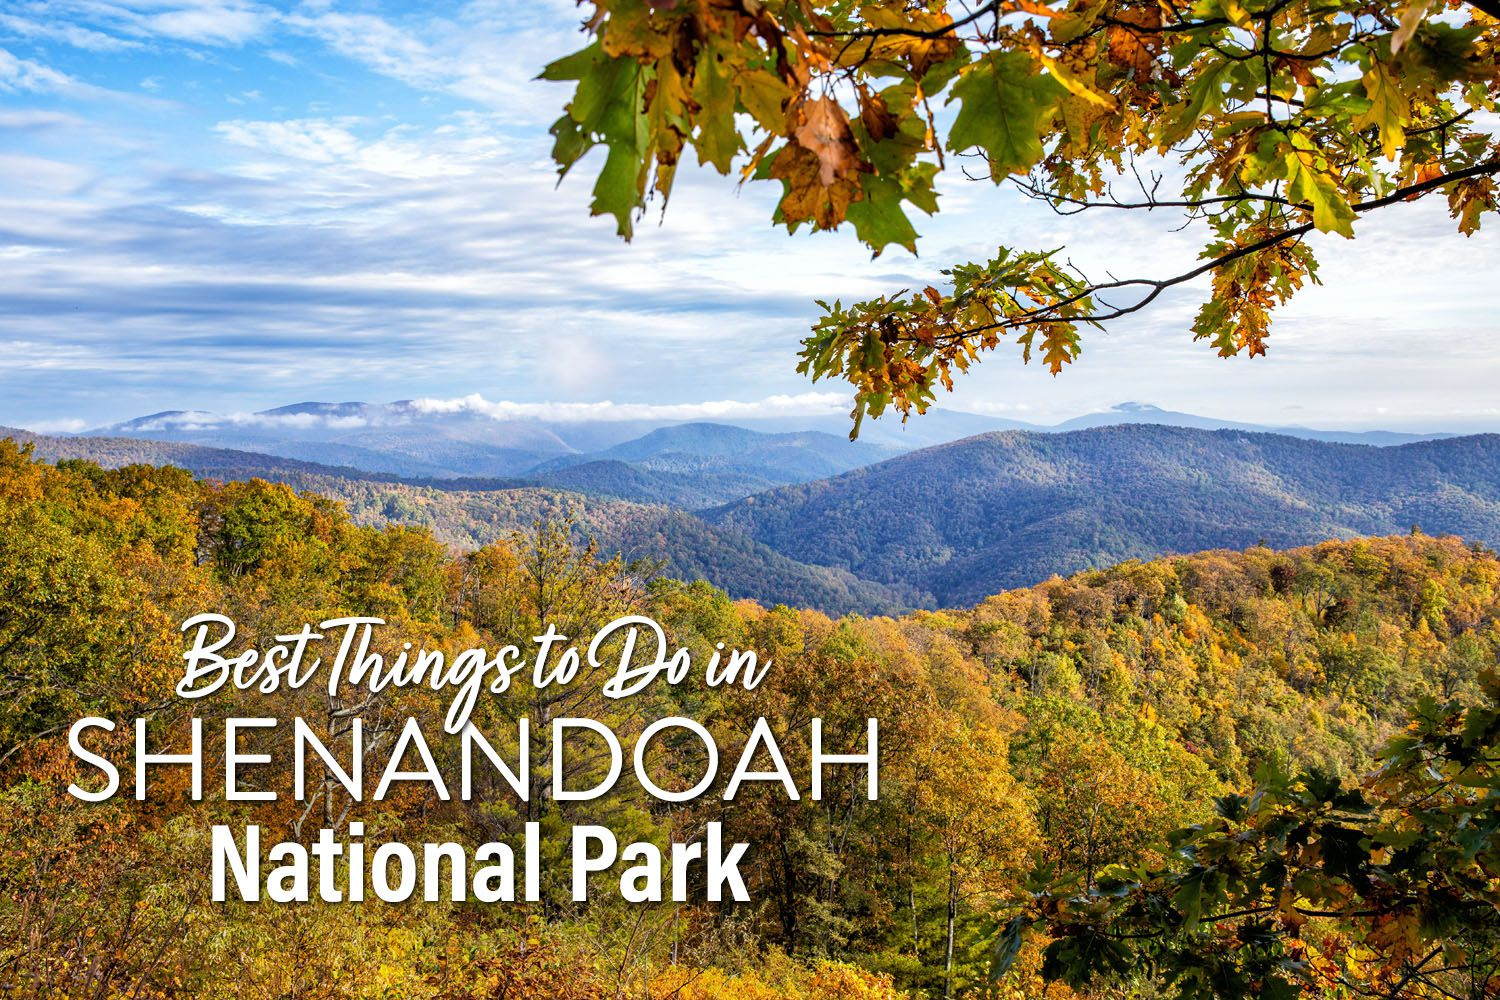 Things to do in Shenandoah